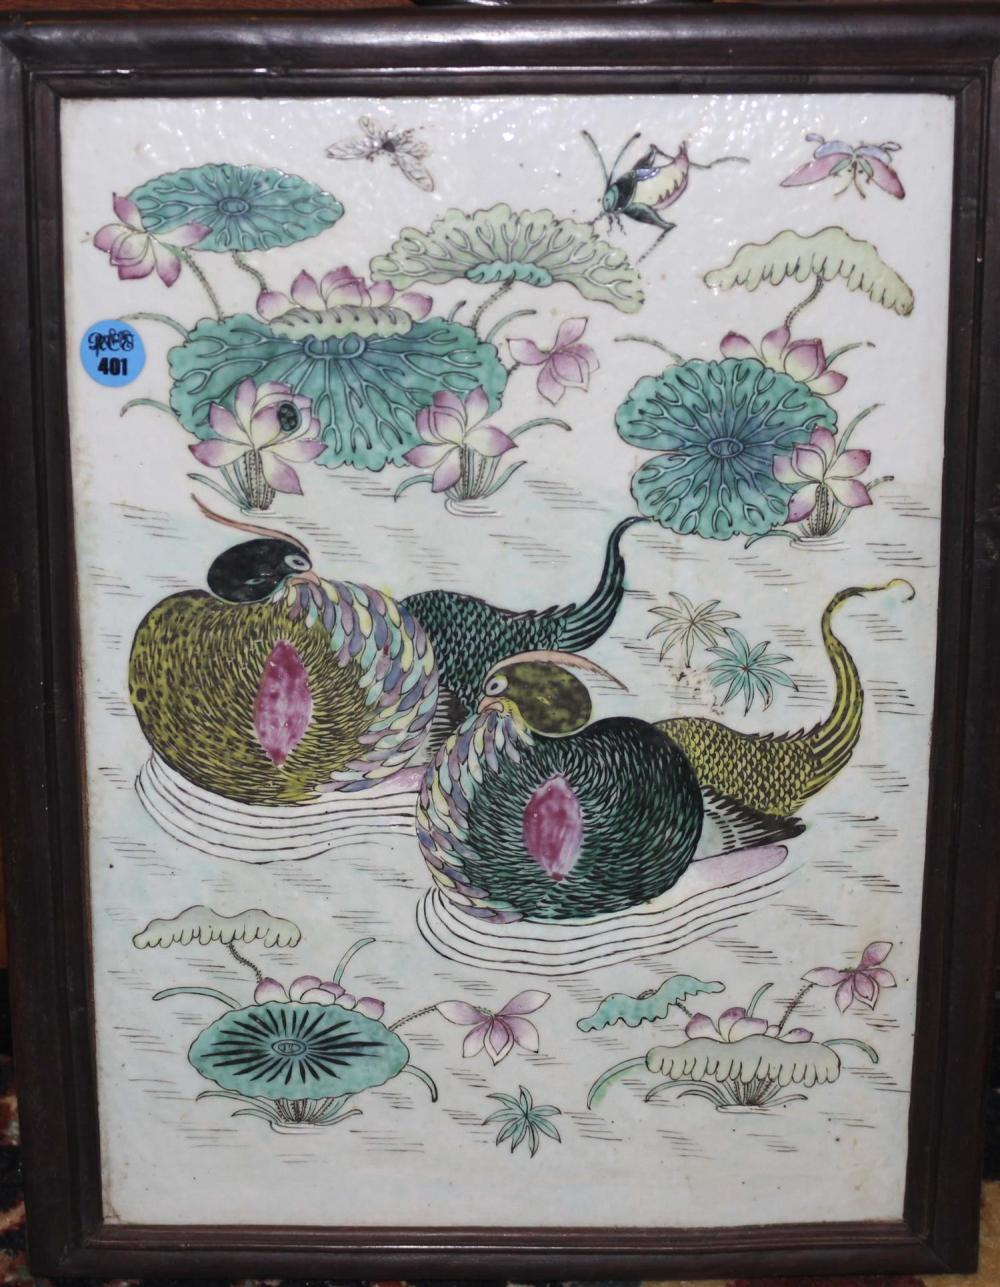 CHINESE FAMILLE VERTE PORCELAIN TILE PAINTING Depicts two waterfowl swimming amongst water lilies. 13